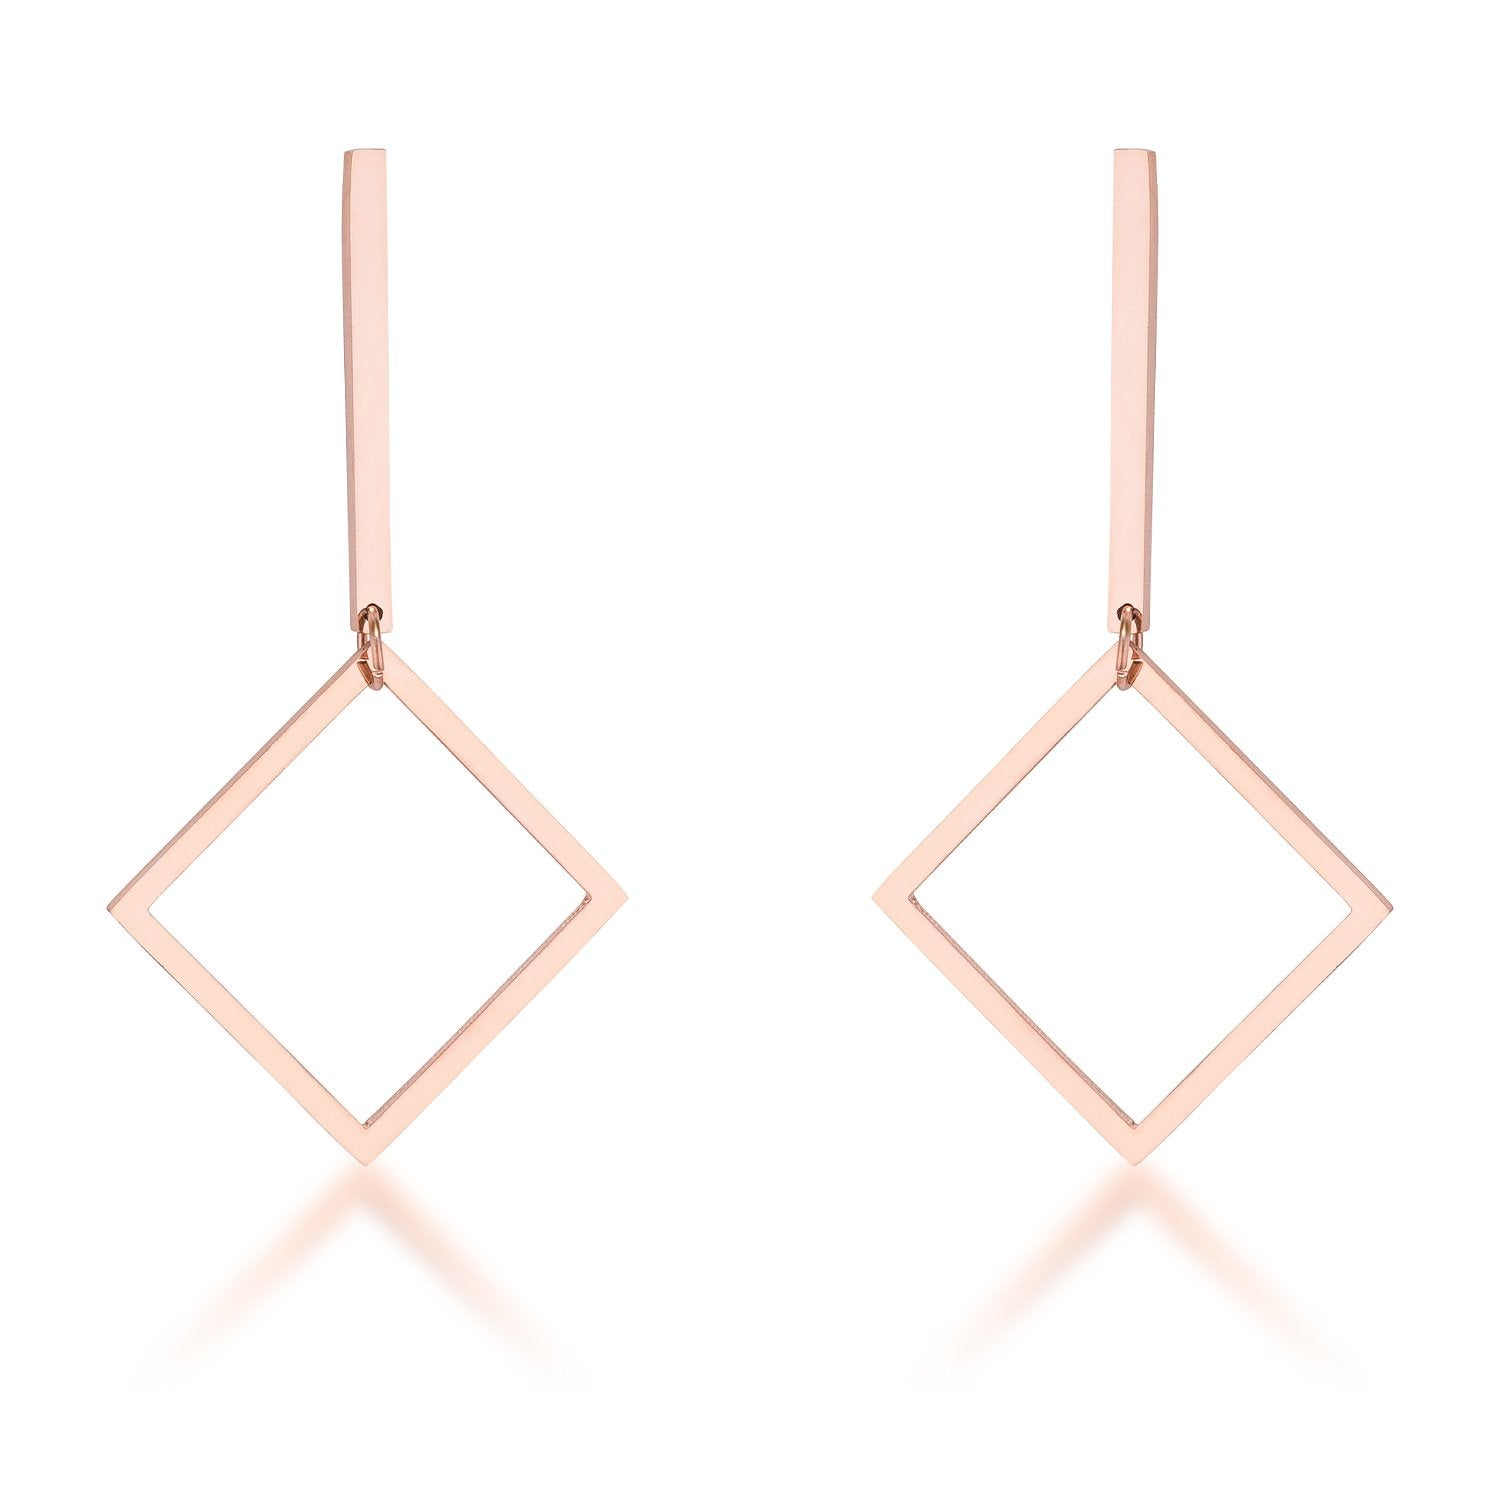 Trendy Geometric Stainless Steel Drop Earrings - E01960AV-V00